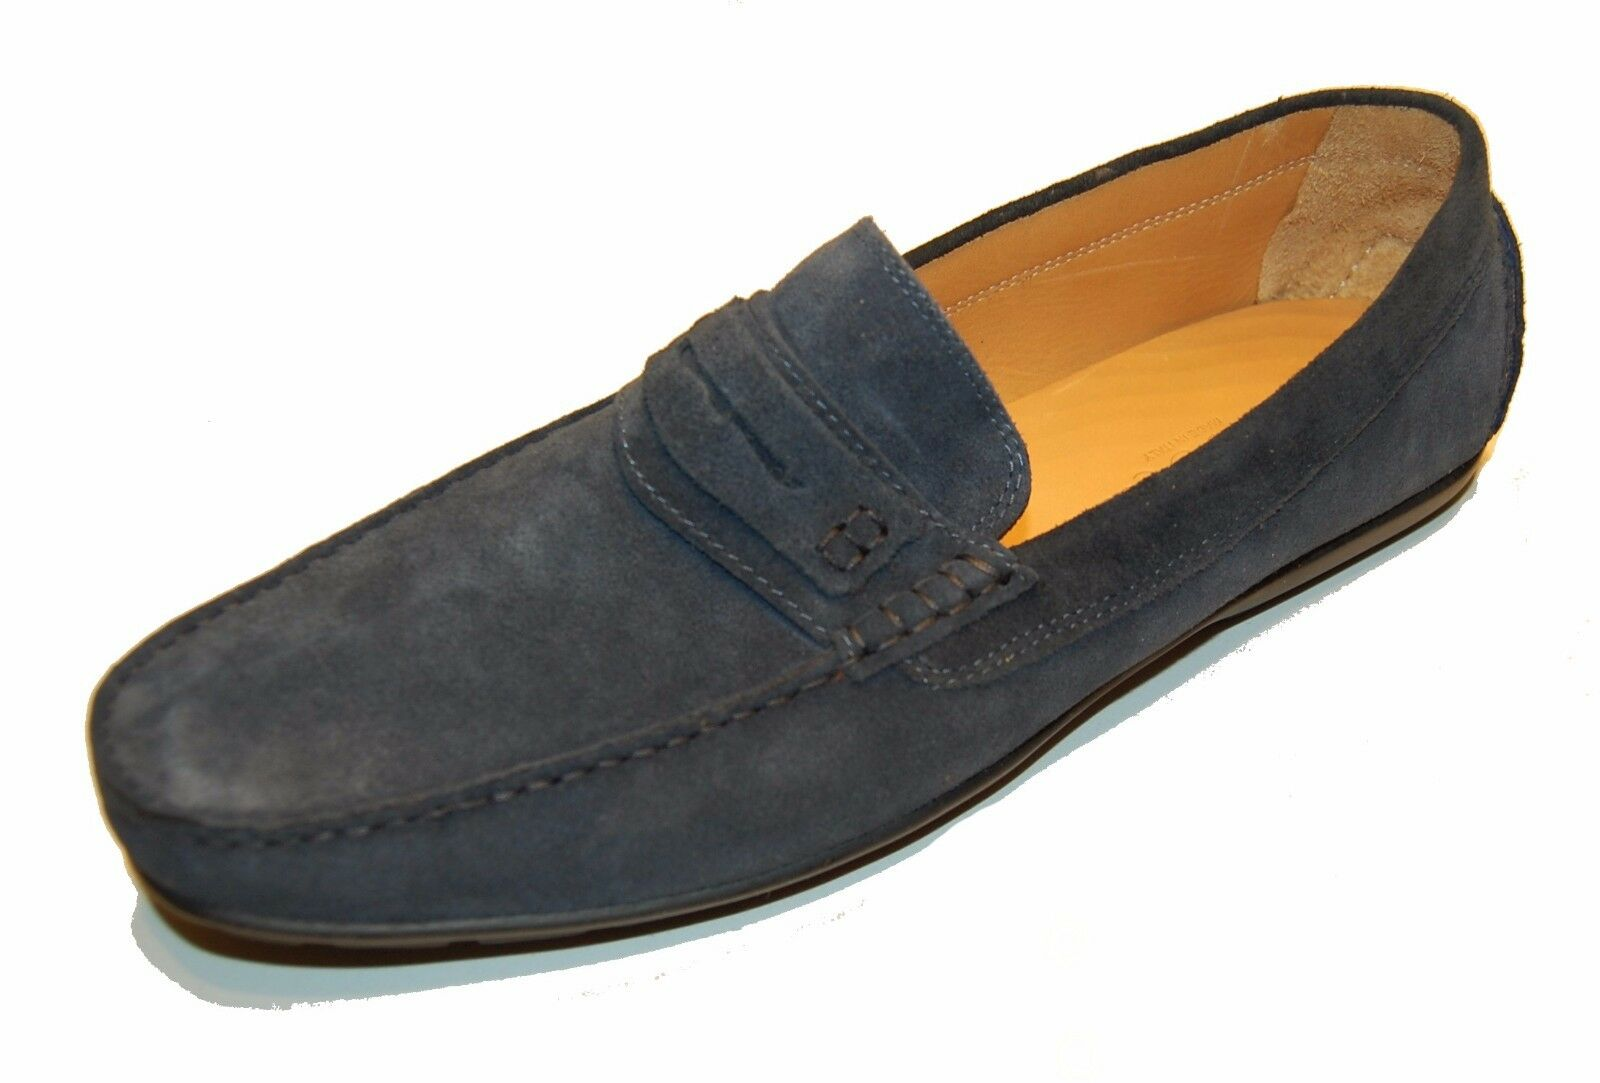 Saks Fifth Avenue Men's bluee Loafers Suede  shoes Size 13  278